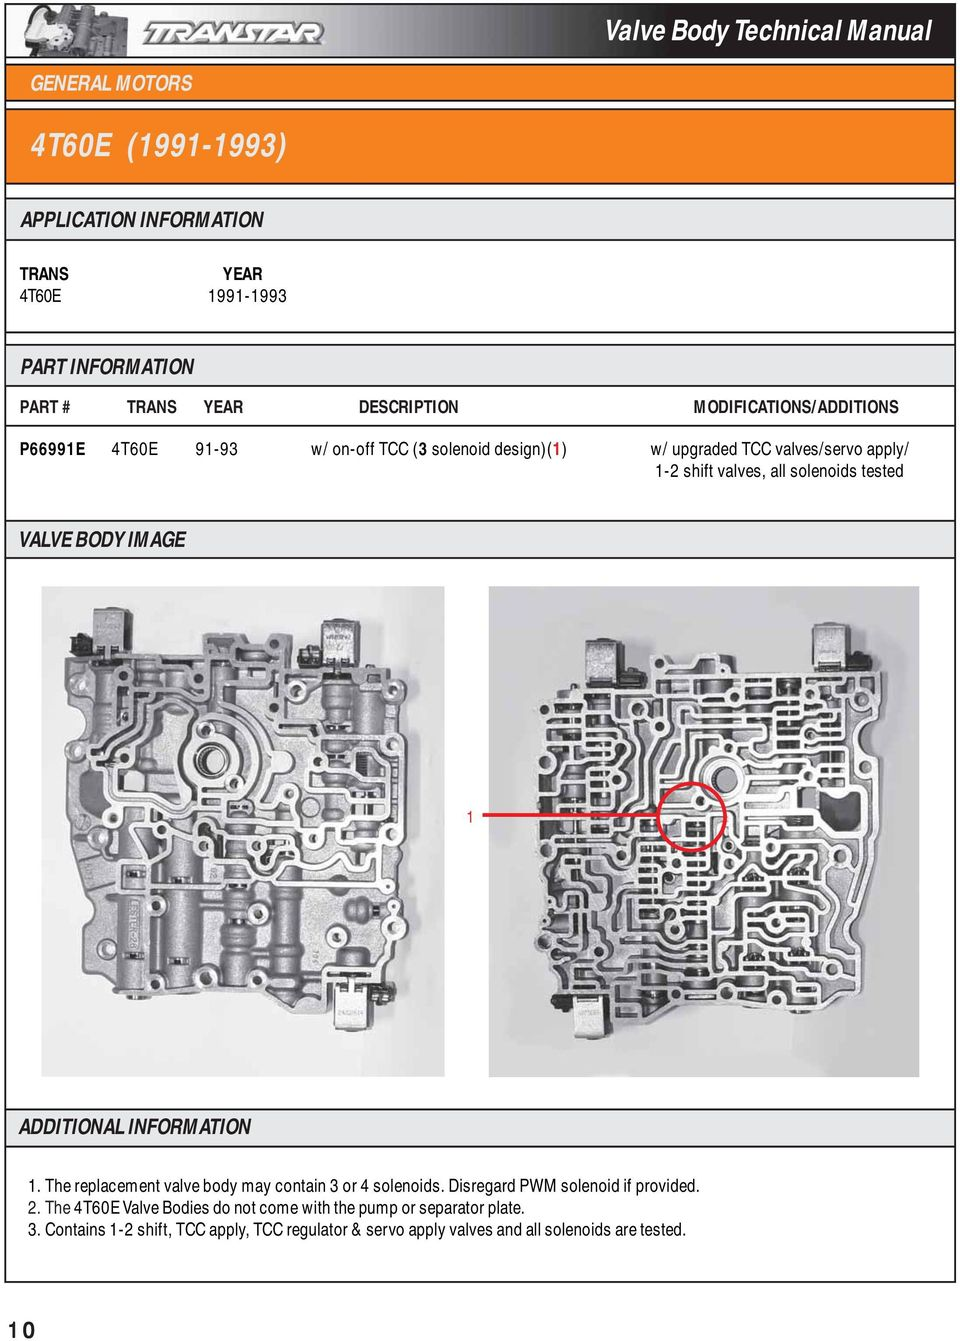 125c 1992 Up Valve Body Technical Manual General Motors 4t60e Wiring Diagram The Replacement May Contain 3 Or 4 Solenoids Disregard Pwm Solenoid If Provided